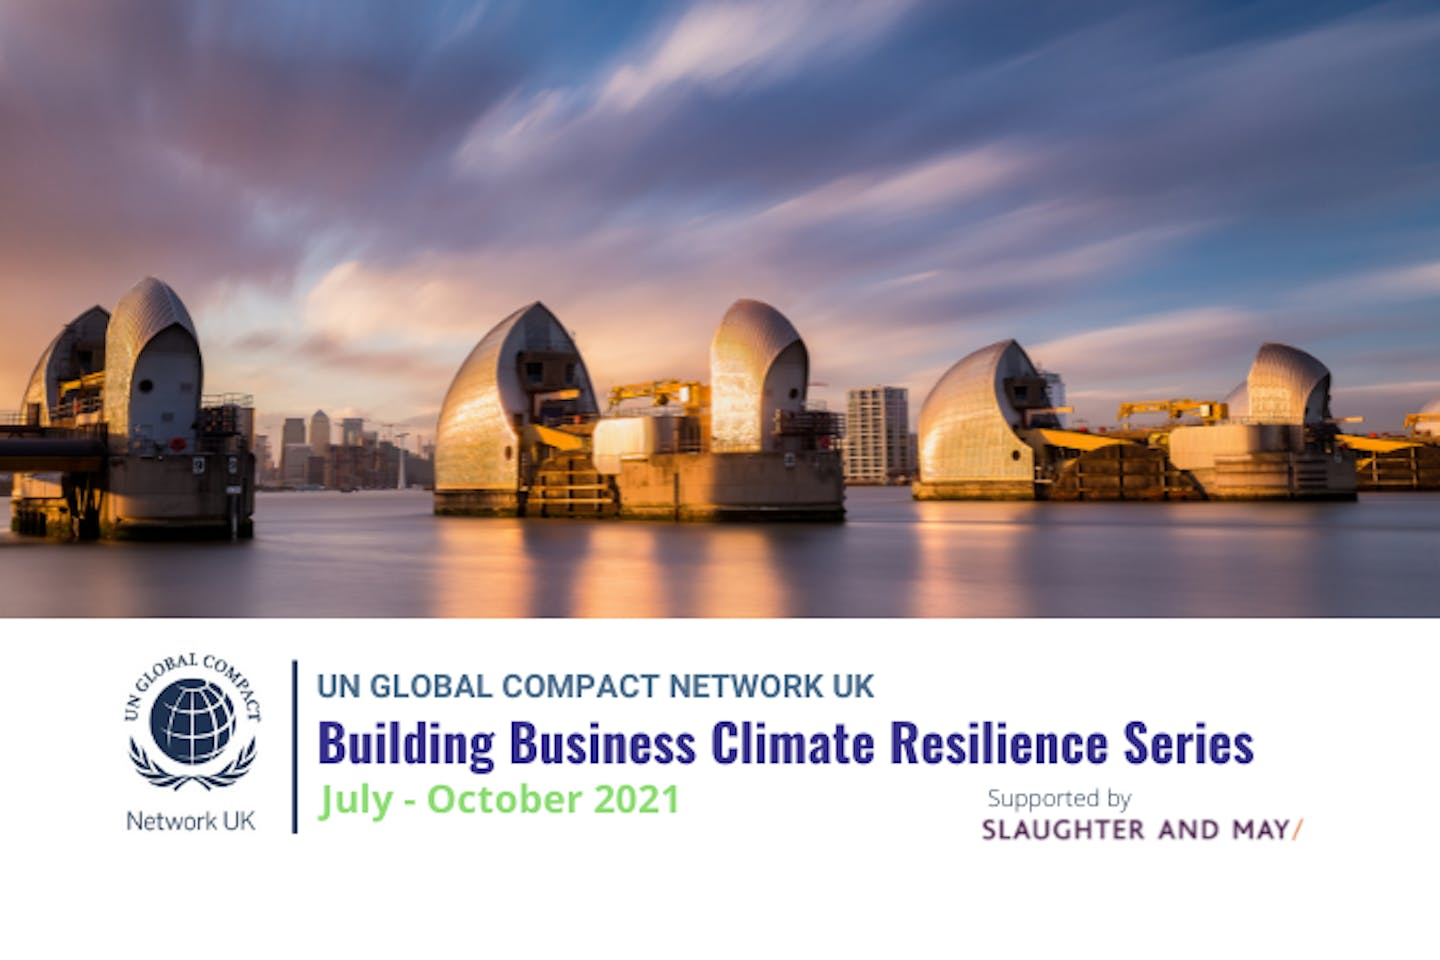 'Building business climate resilience' webinar series